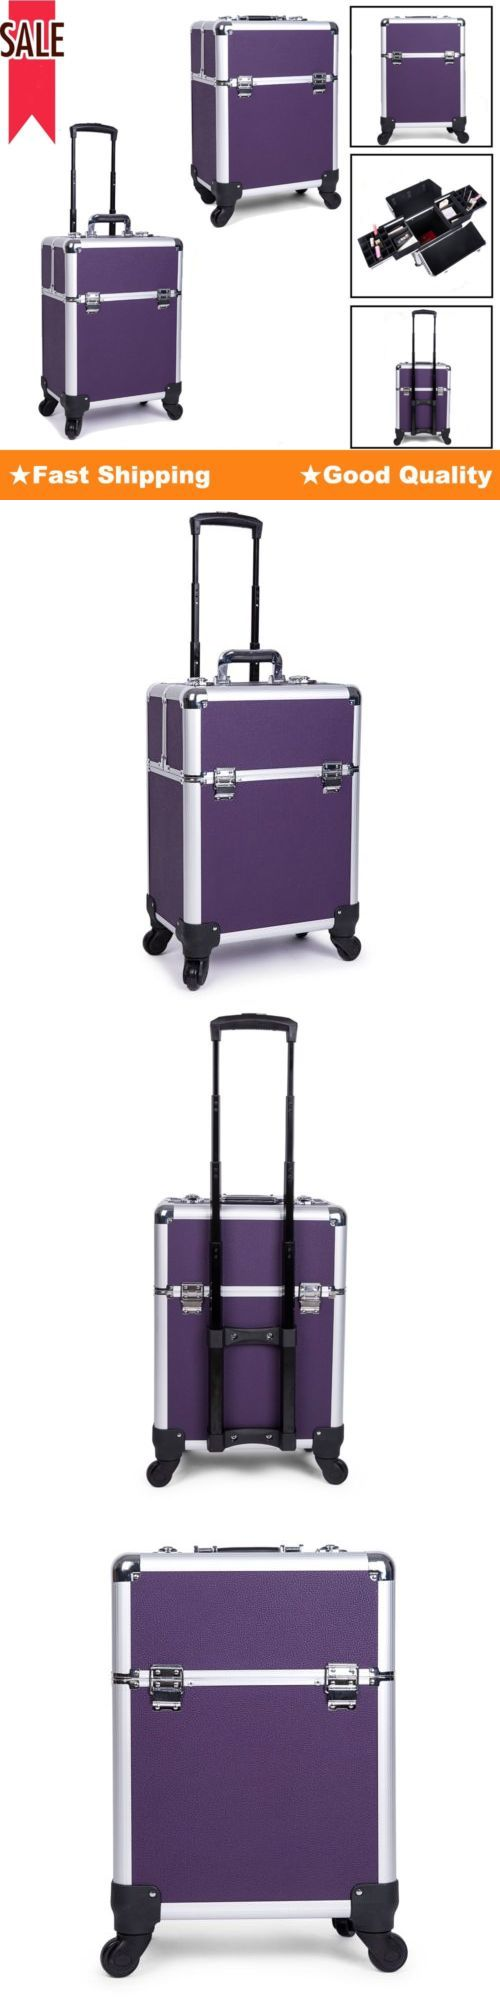 Suitcase With Drawers Best 25 Makeup Trolley Ideas On Pinterest Small Shopping Carts